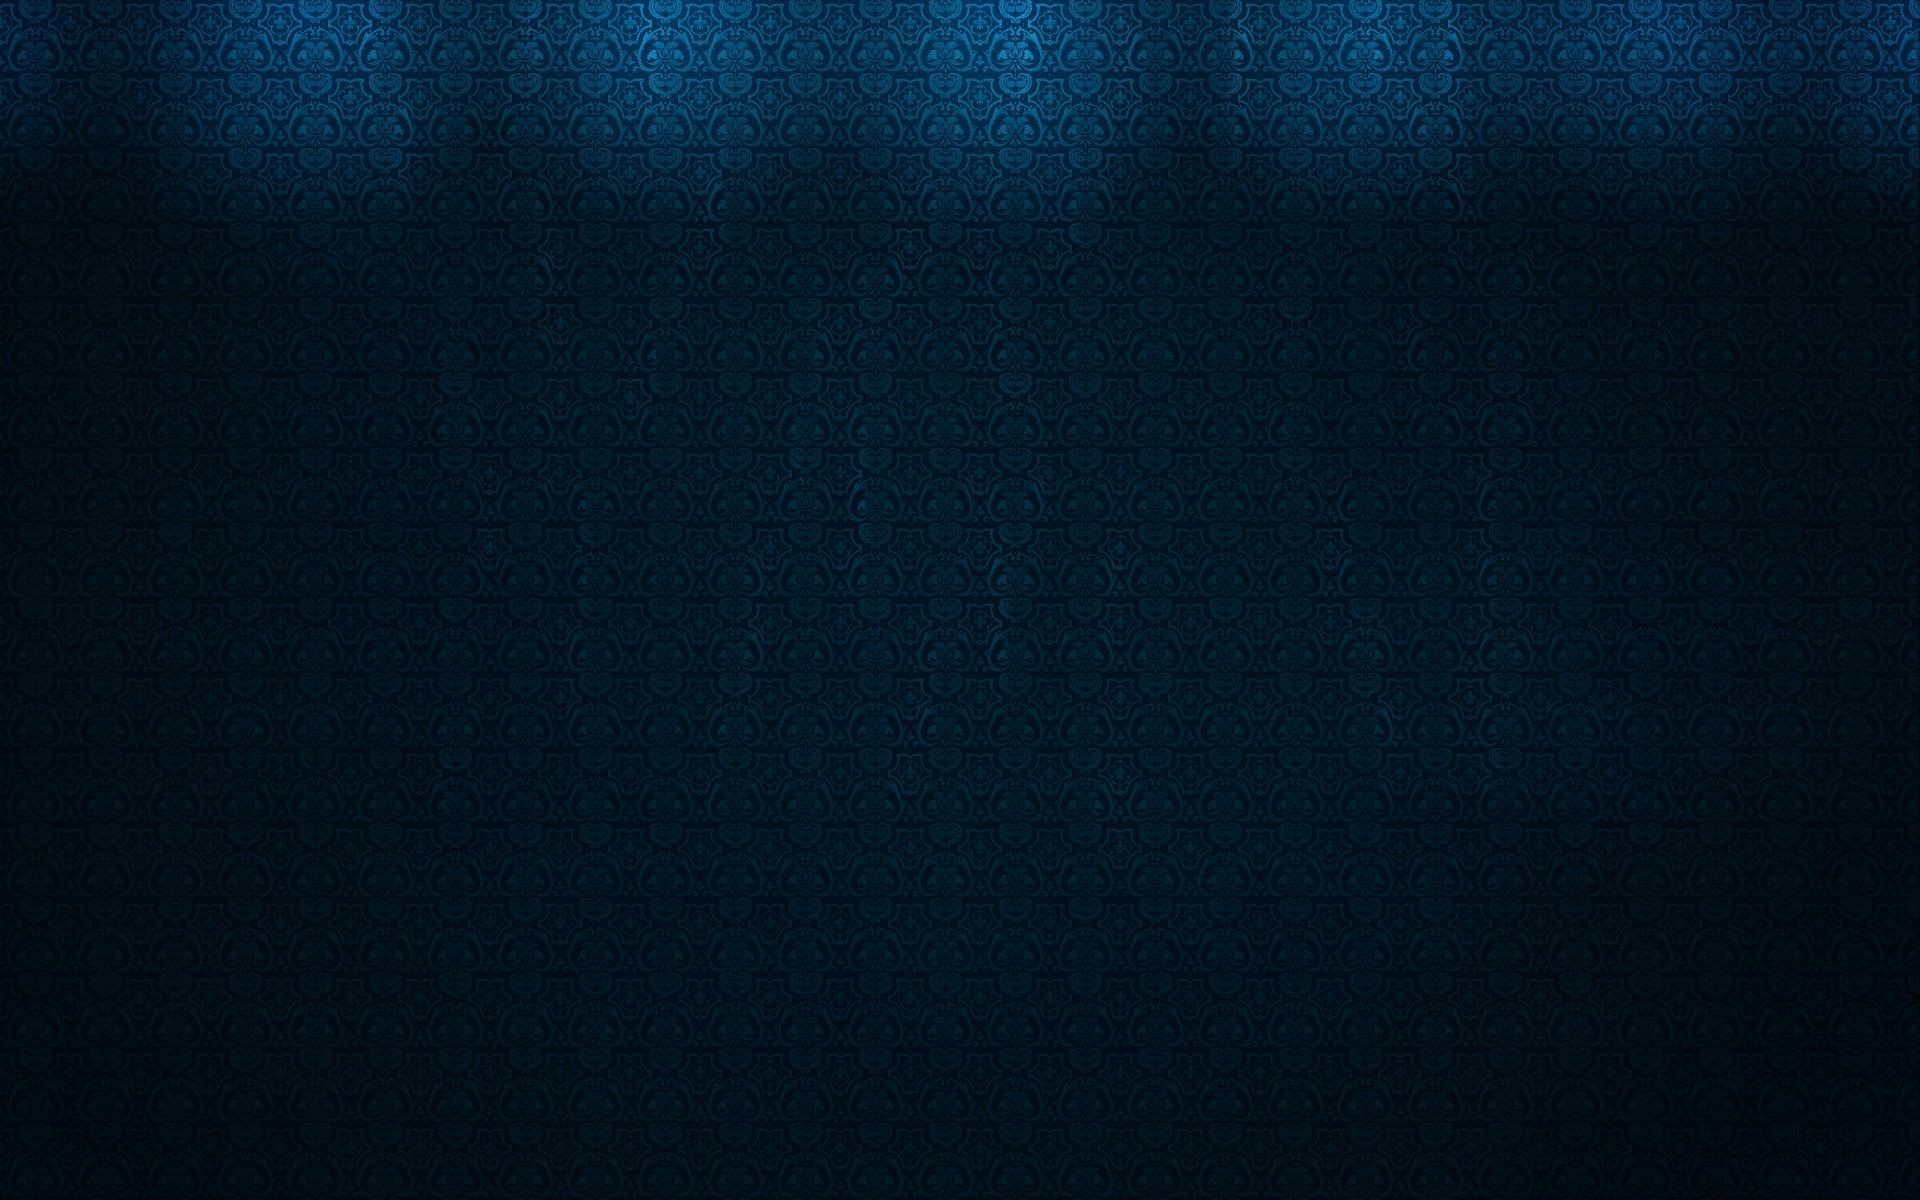 Navy Blue Navy Blue Background ① Download Free Amazing Full Hd